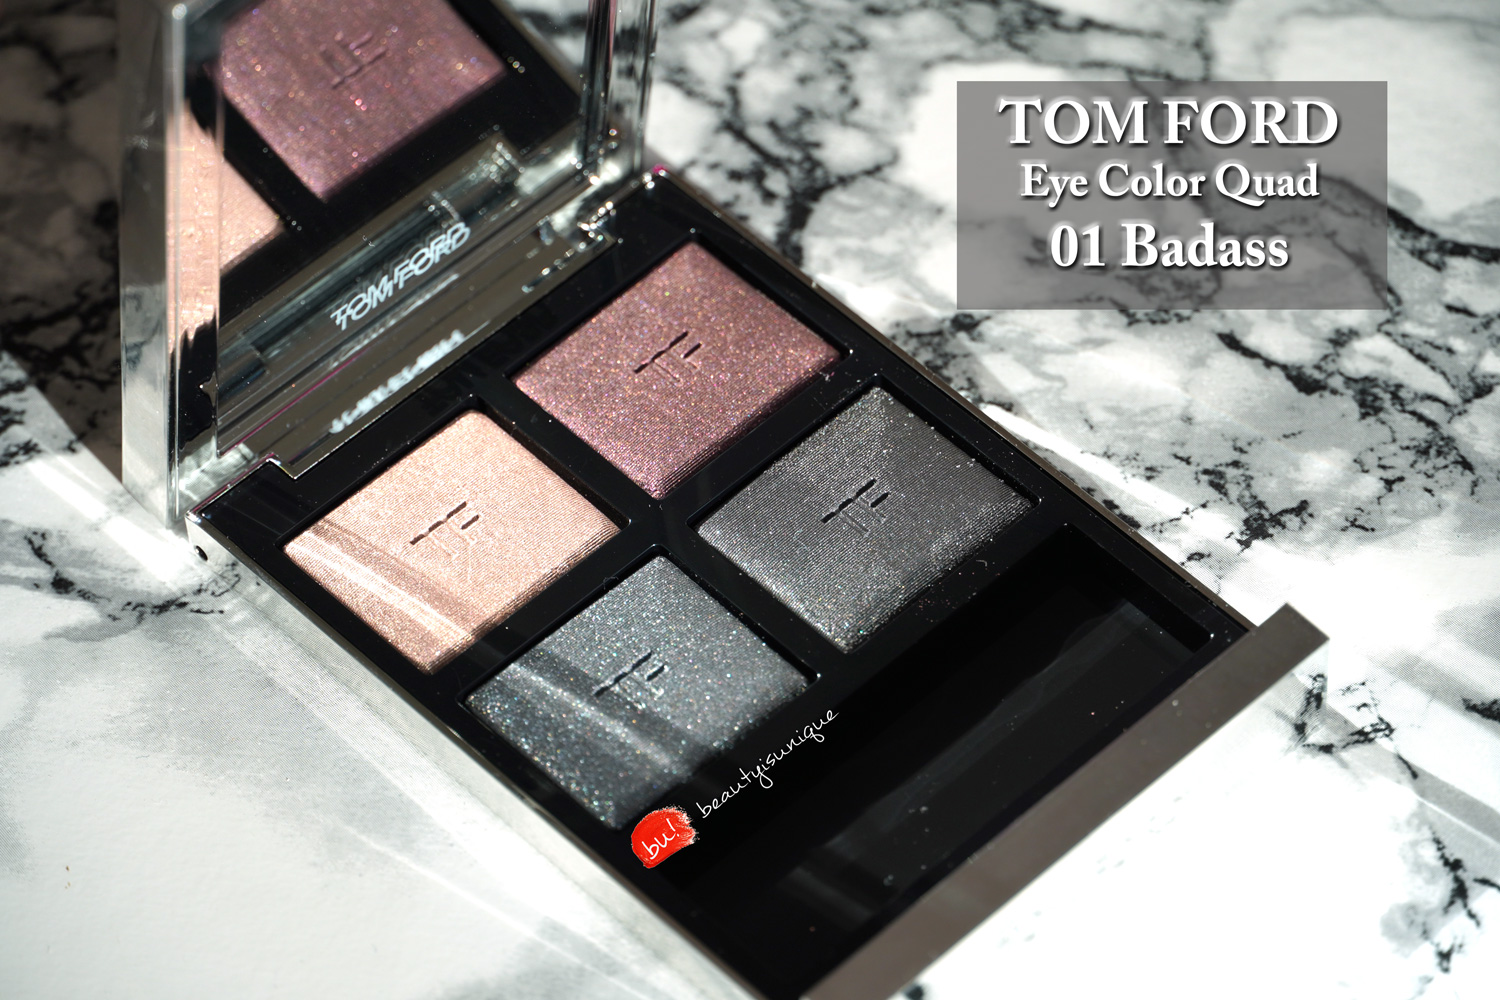 Tom-ford-extreme-badass